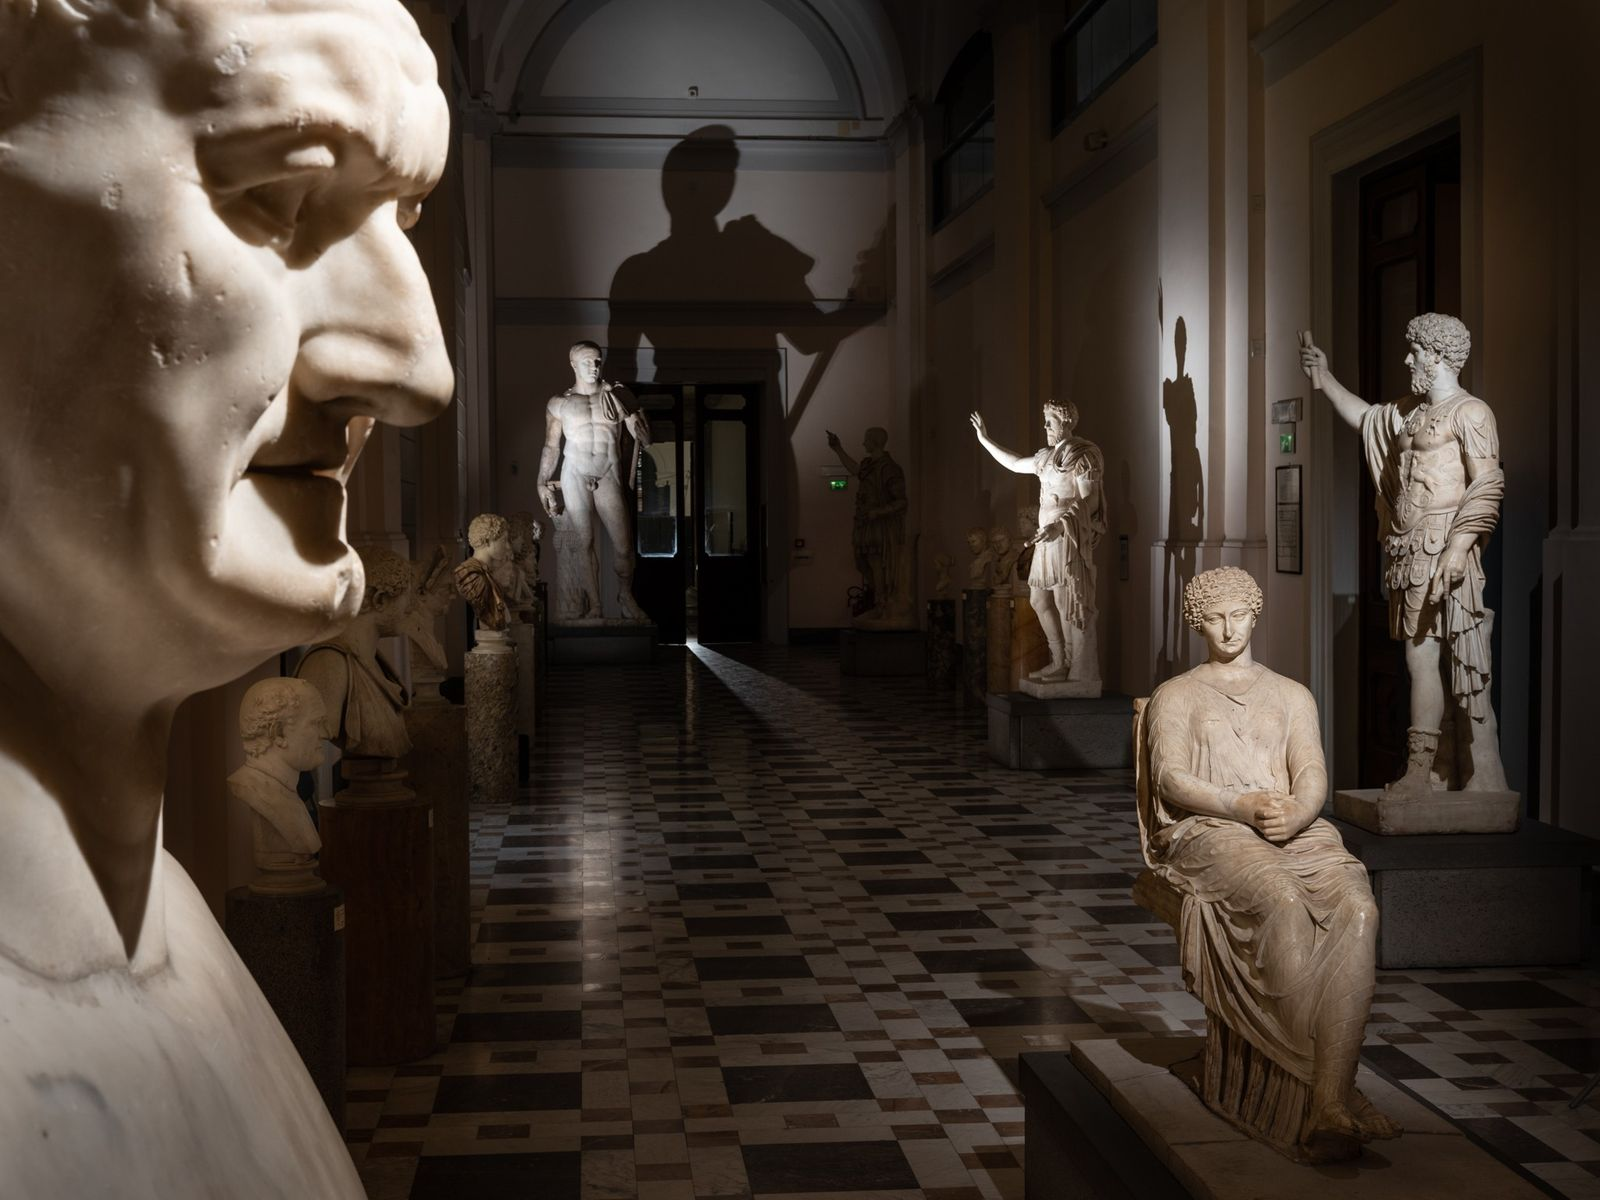 Museums' treasures endure, but how the public sees them may change